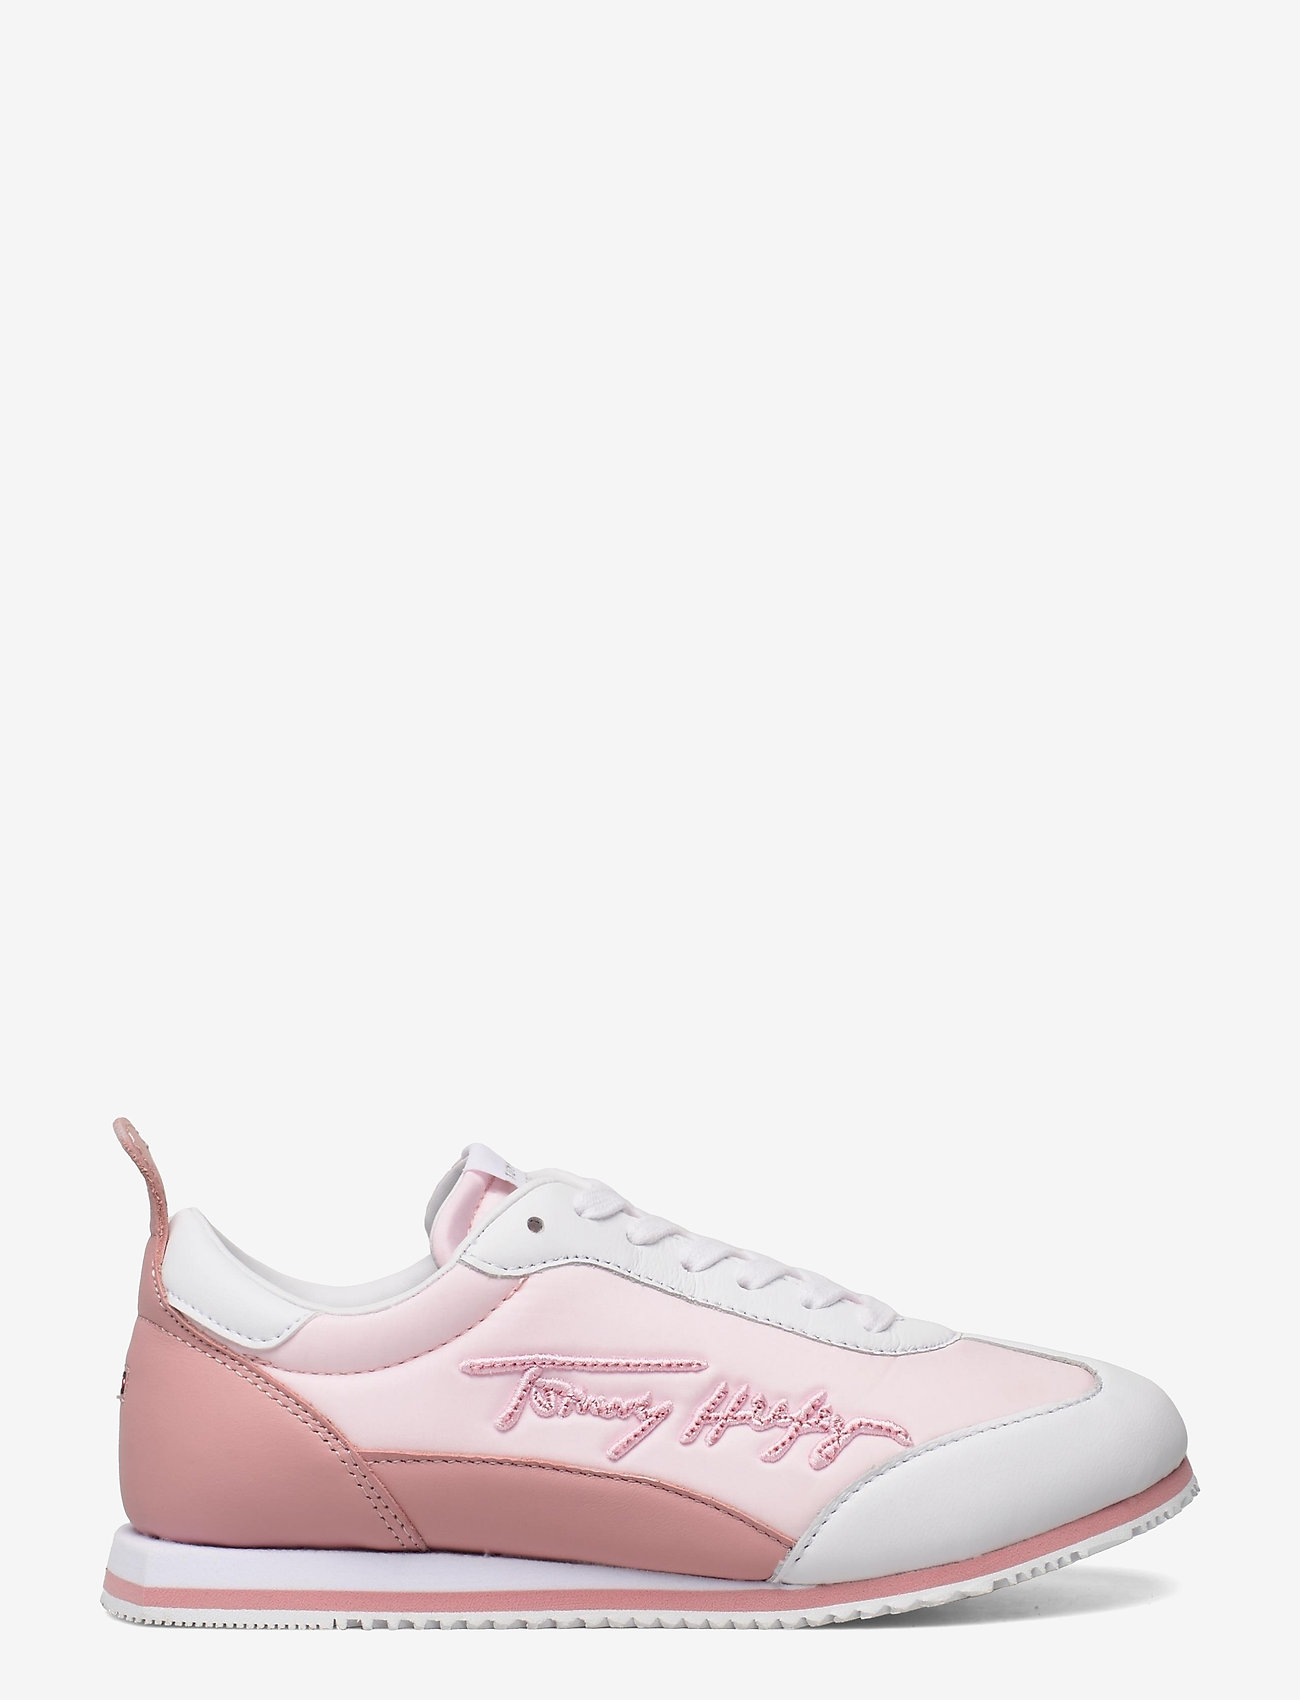 Tommy Hilfiger - SIGNATURE RETRO RUNNER - low top sneakers - light pink - 1